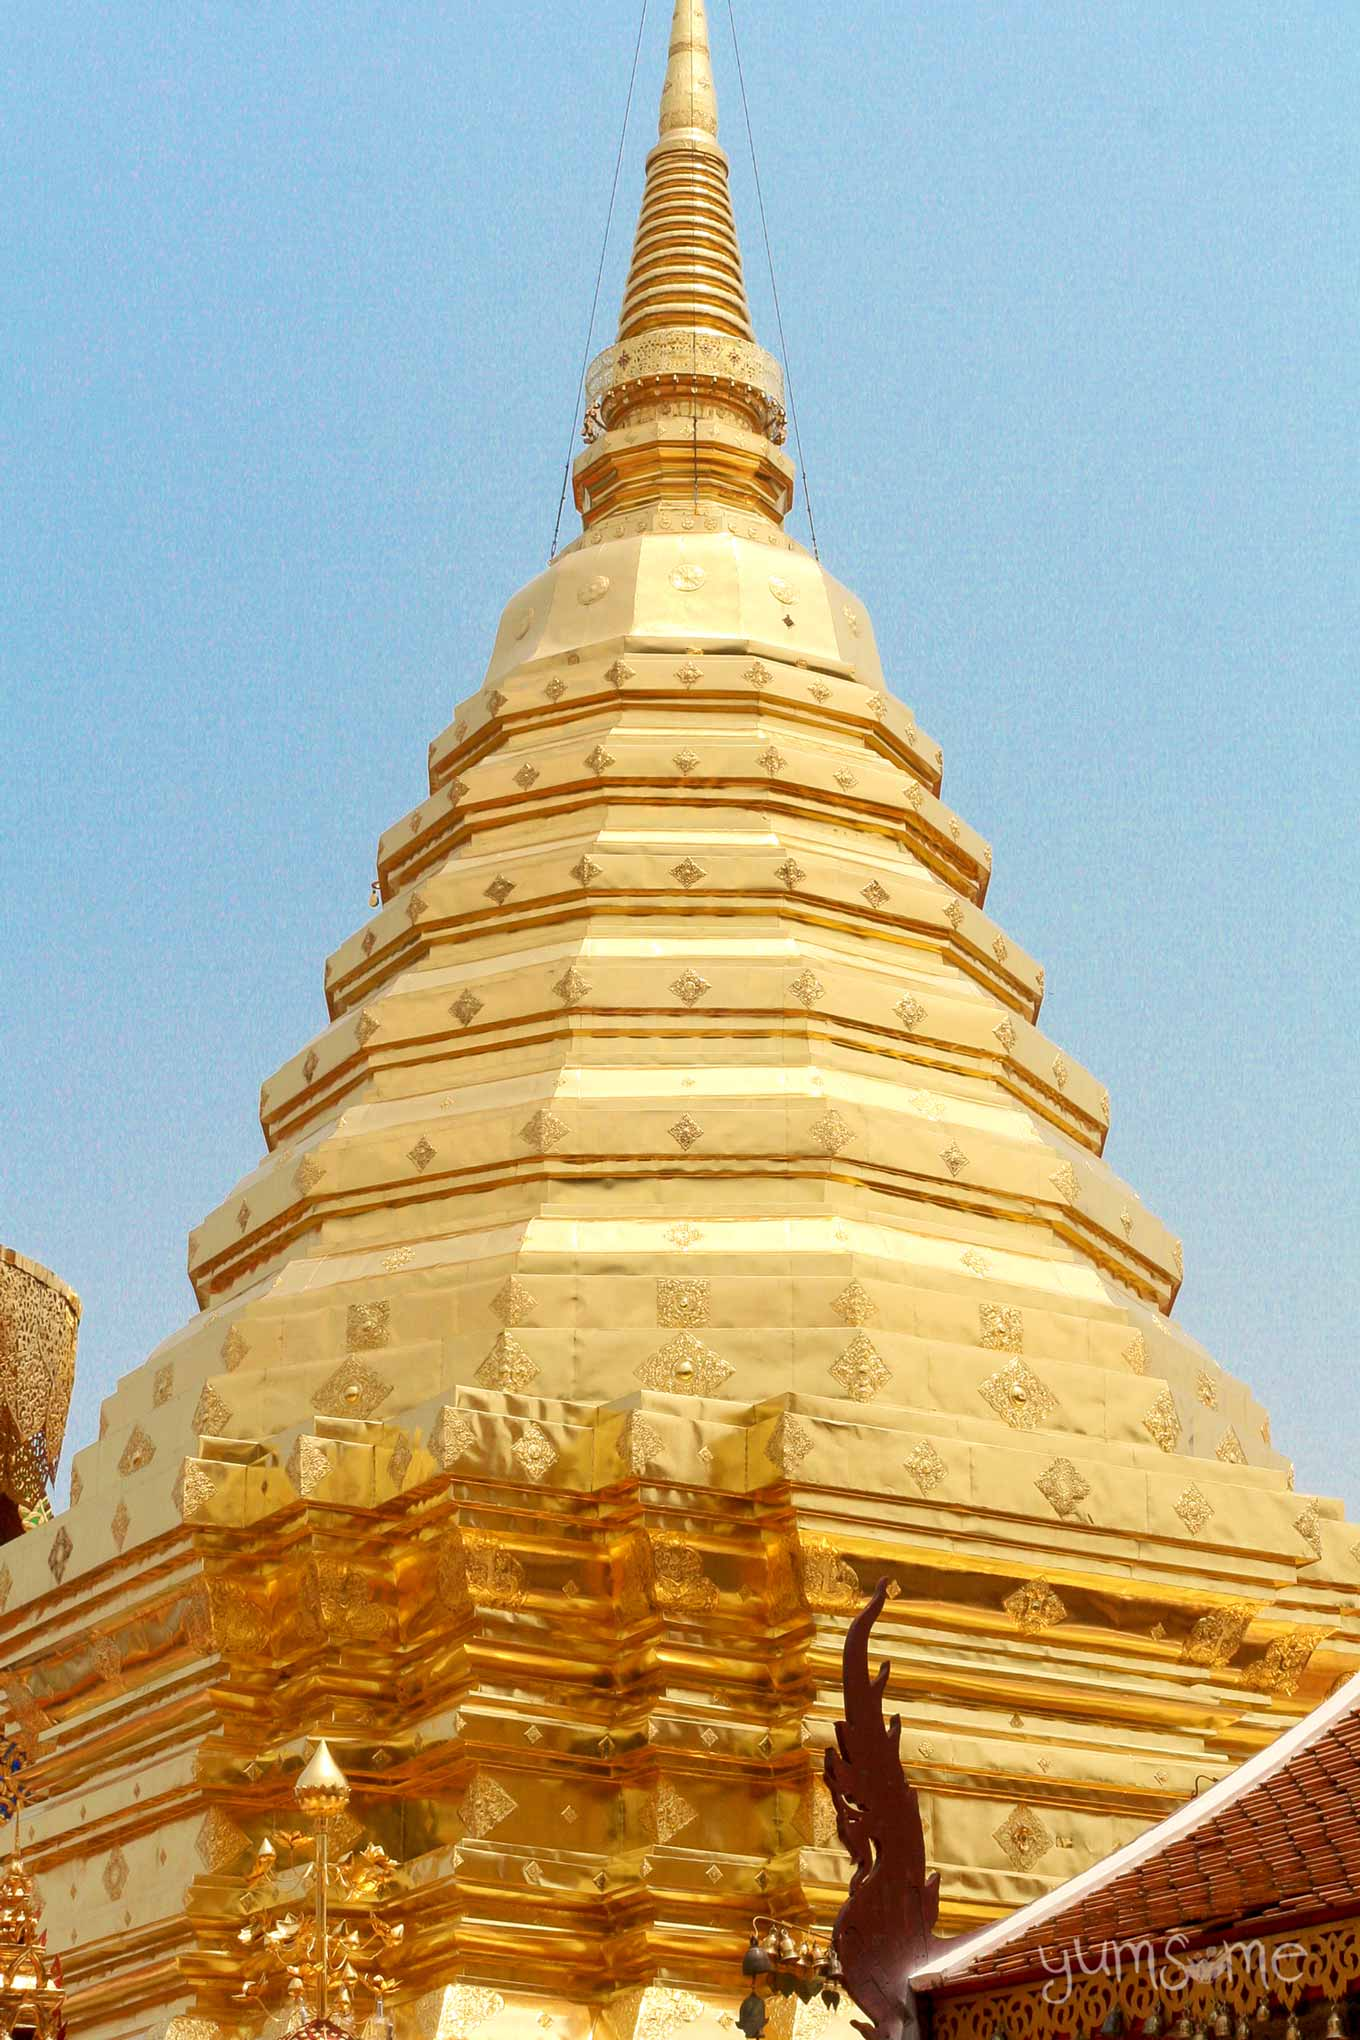 Mid-section of the chedi at Wat Phra That Doi Suthep.